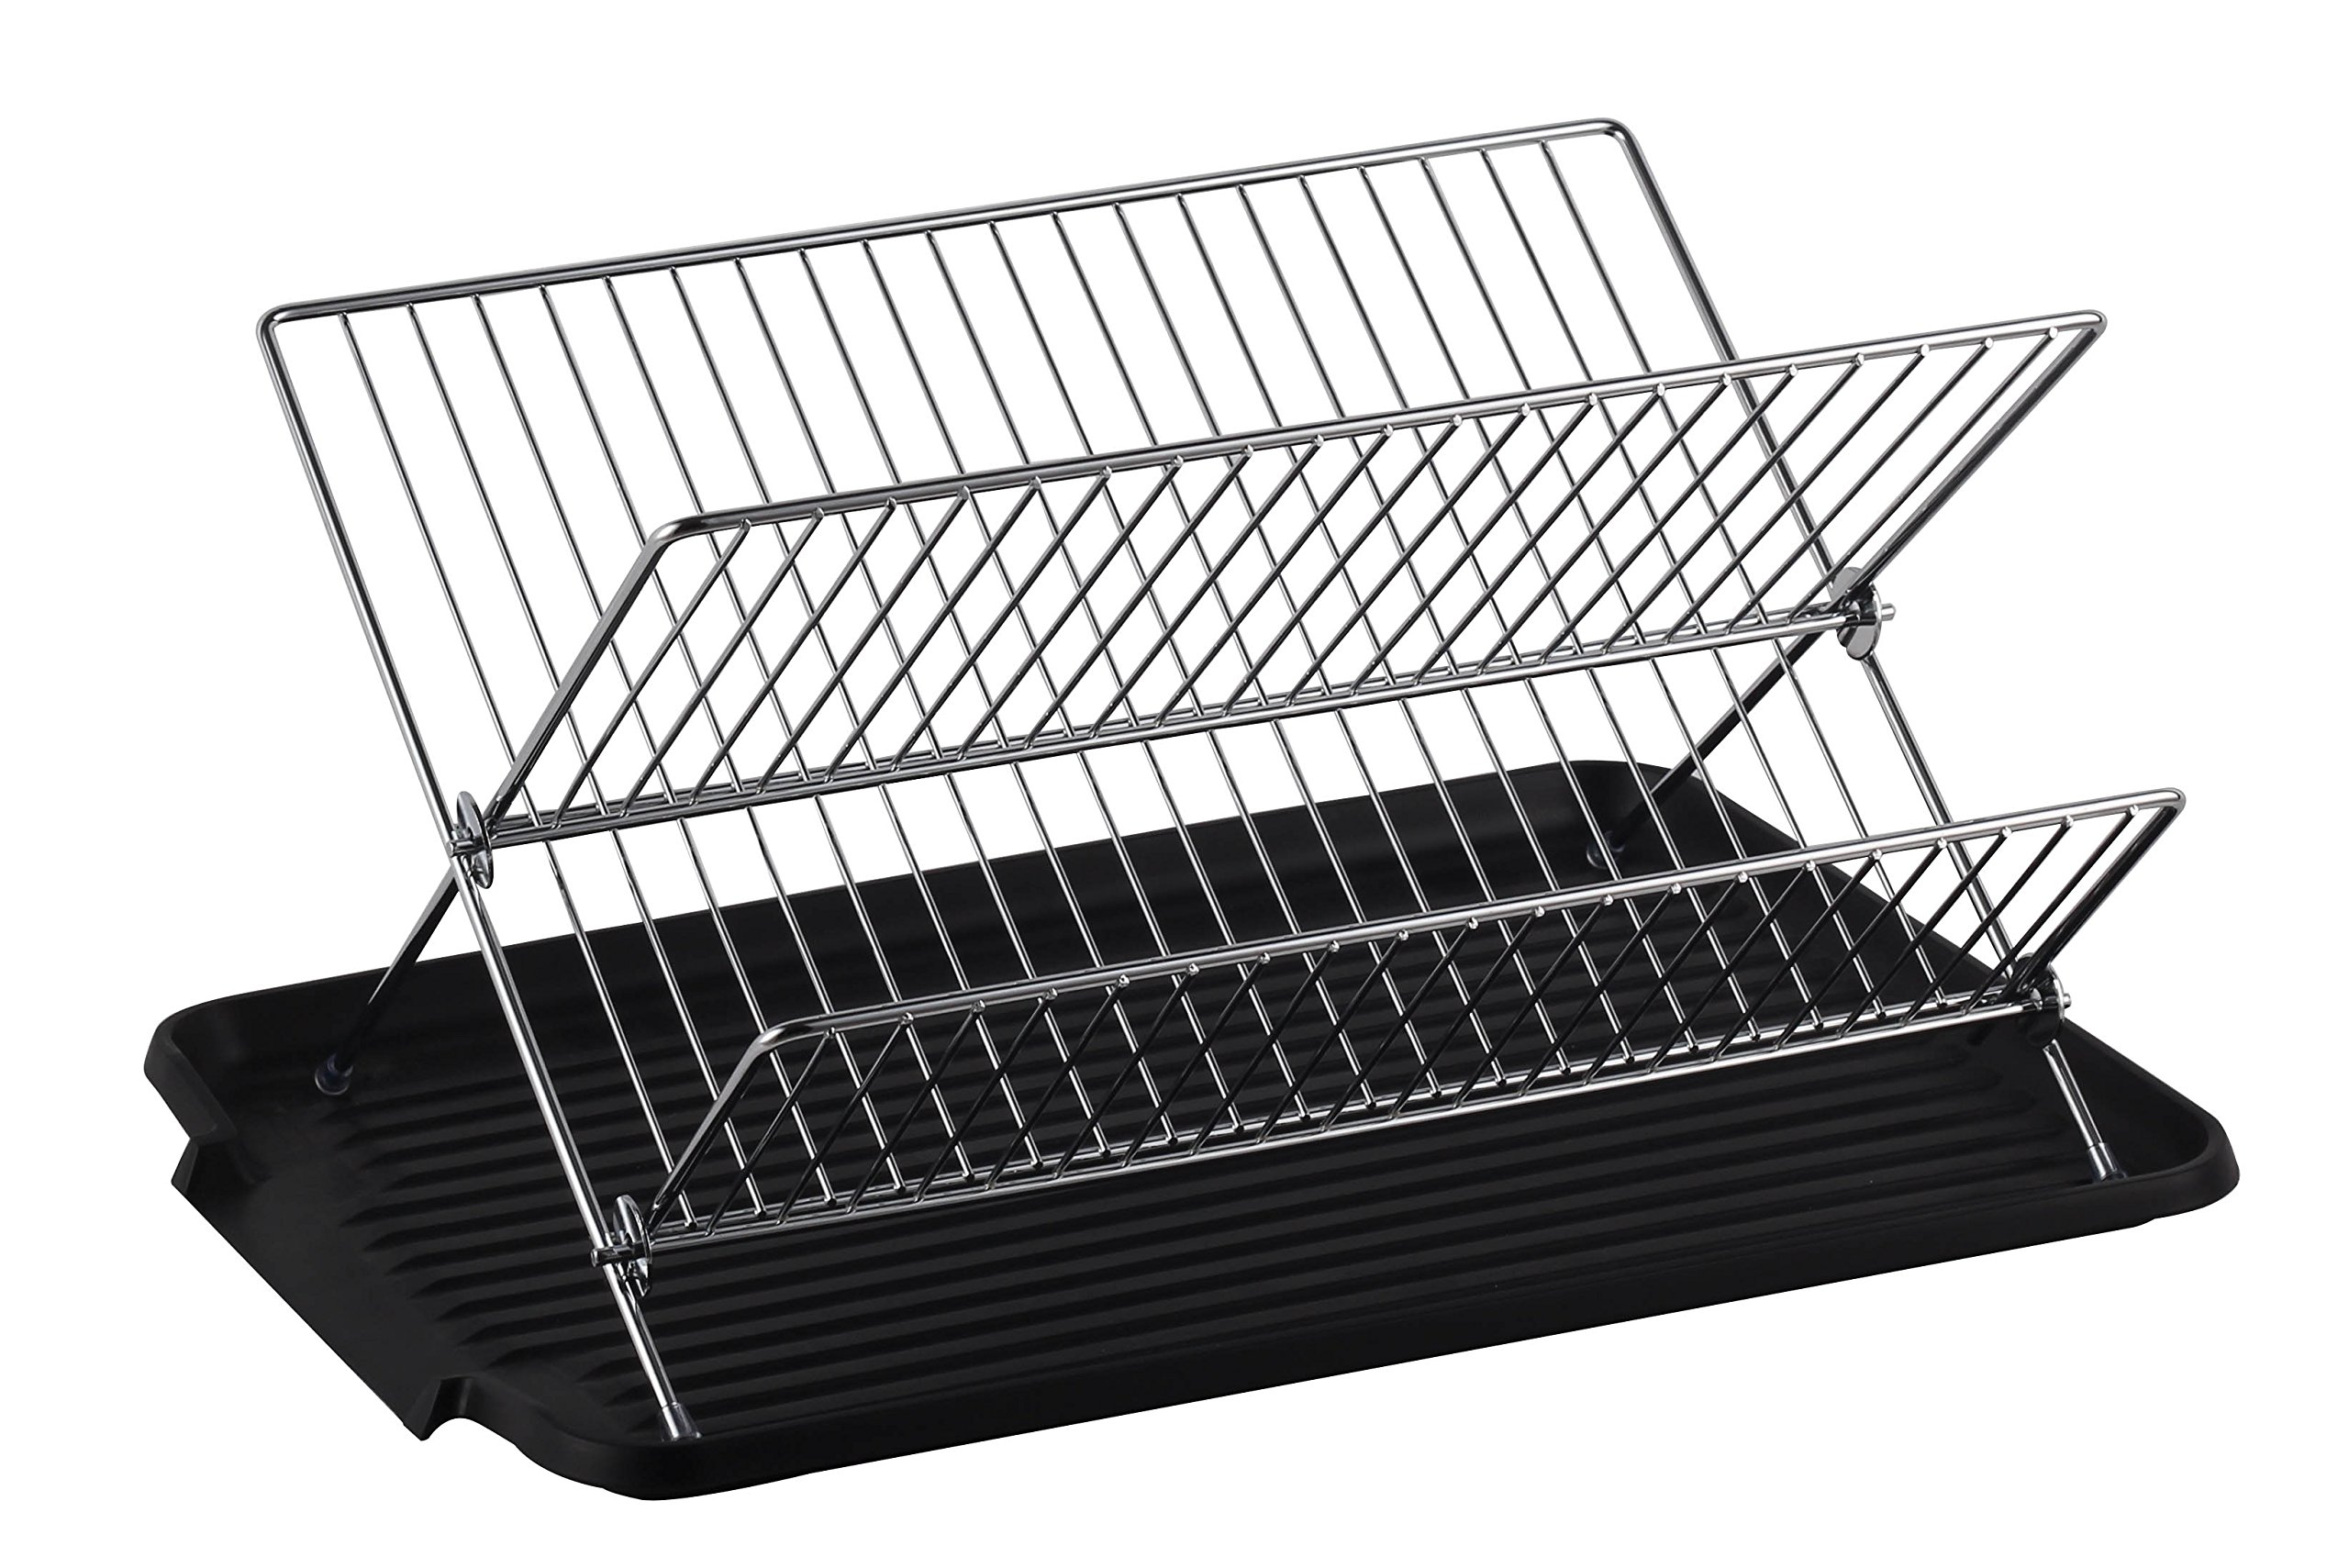 Deluxe Chrome-plated Steel Foldable X Shape 2-tier Shelf Small Dish Drainers with Drainboard (BlackII) by Neat-O